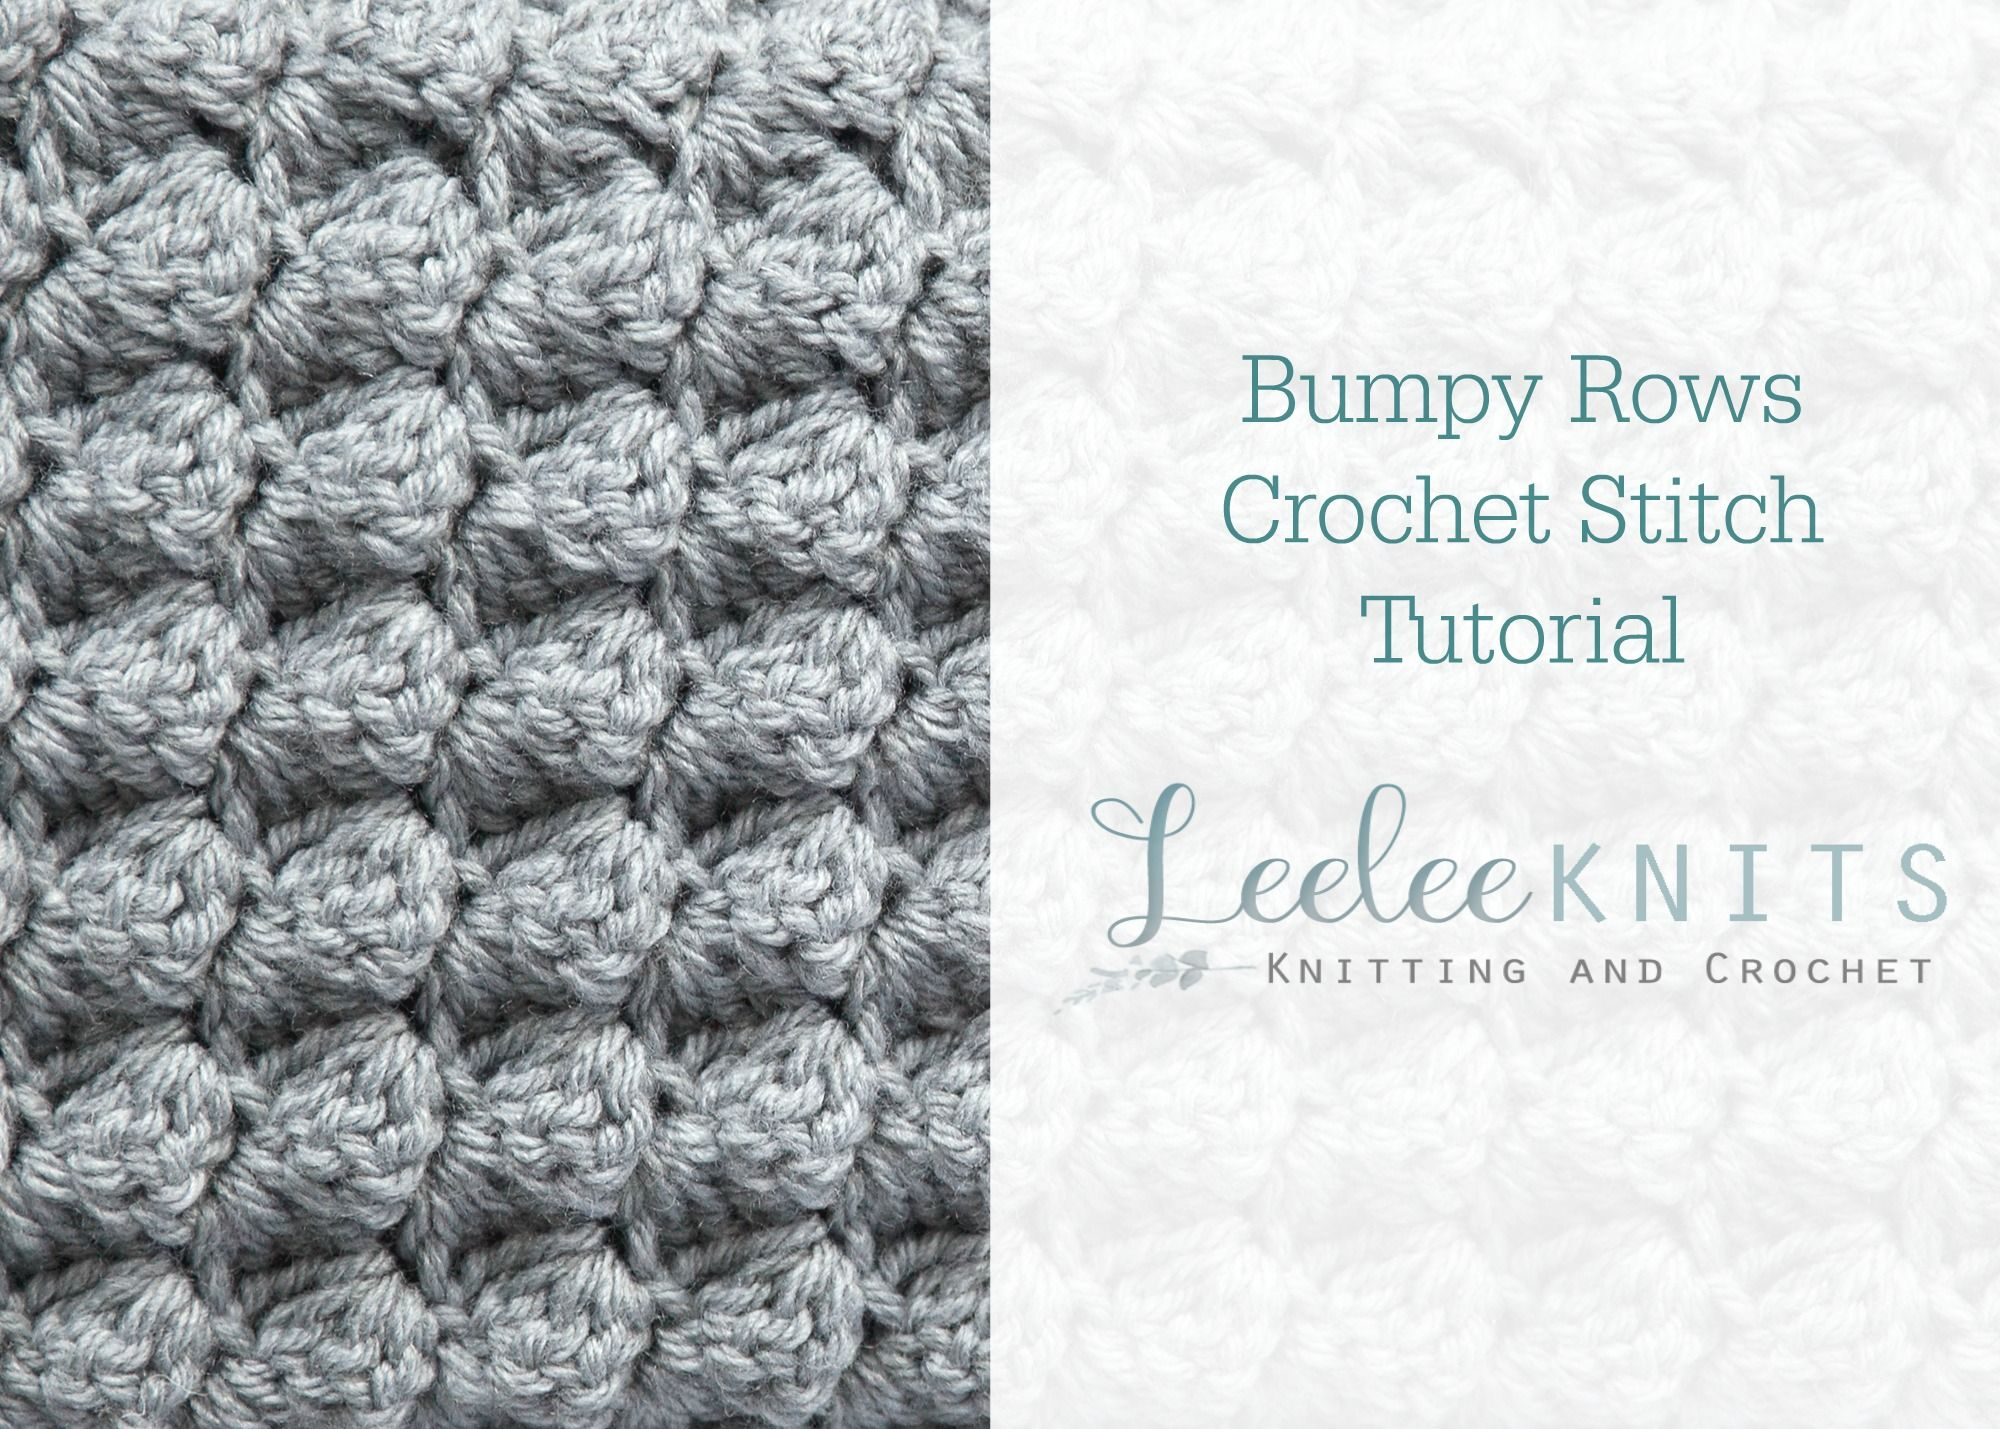 Bumpy Rows Crochet Stitch Tutorial (Leelee Knits) | Puntos crochet y ...